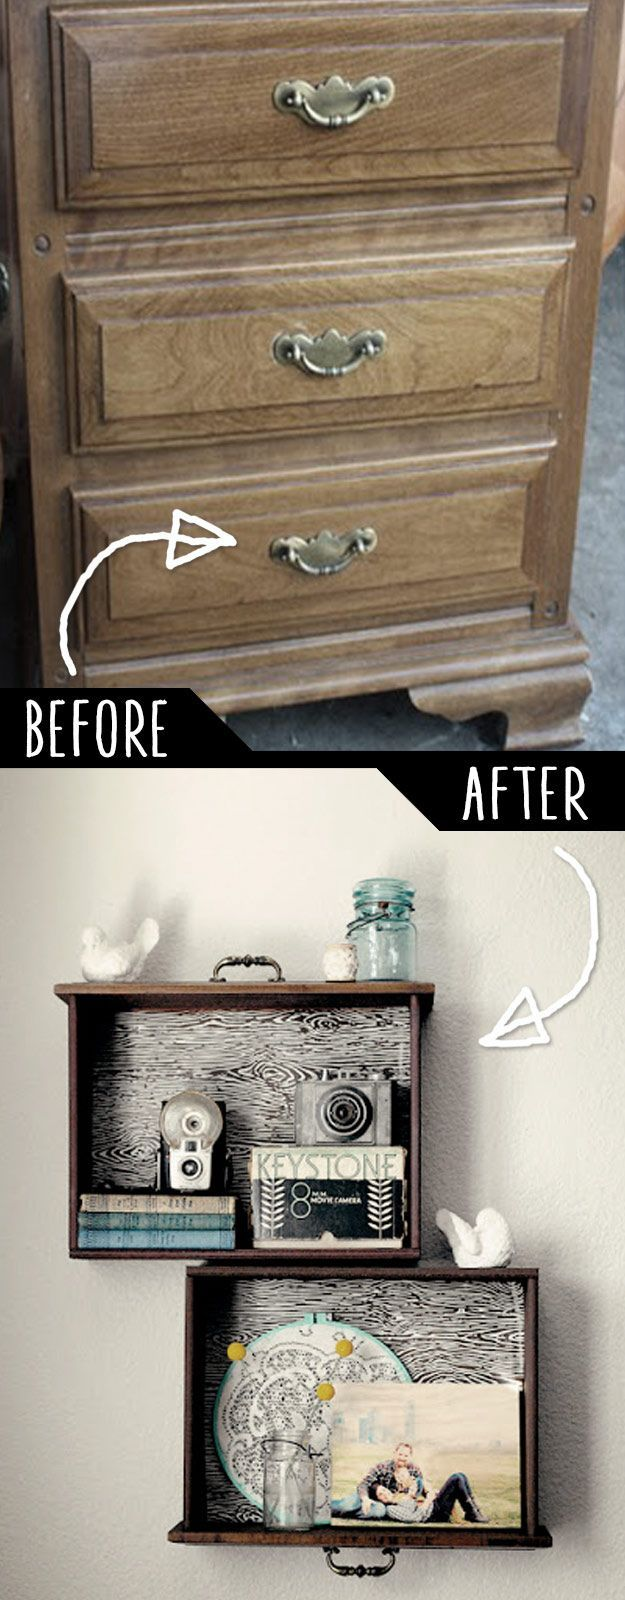 39 Clever DIY Furniture Hacks - Page 3 of 8 - DIY Joy DIY Furniture Hacks | DIY Drawer Shelves | Cool Ideas for Creative Do It Yourself Furniture | Cheap Home Decor Ideas for Bedroom, Bathroom, Living Room, Kitchen - http://diyjoy.com/diy-furniture-hacks